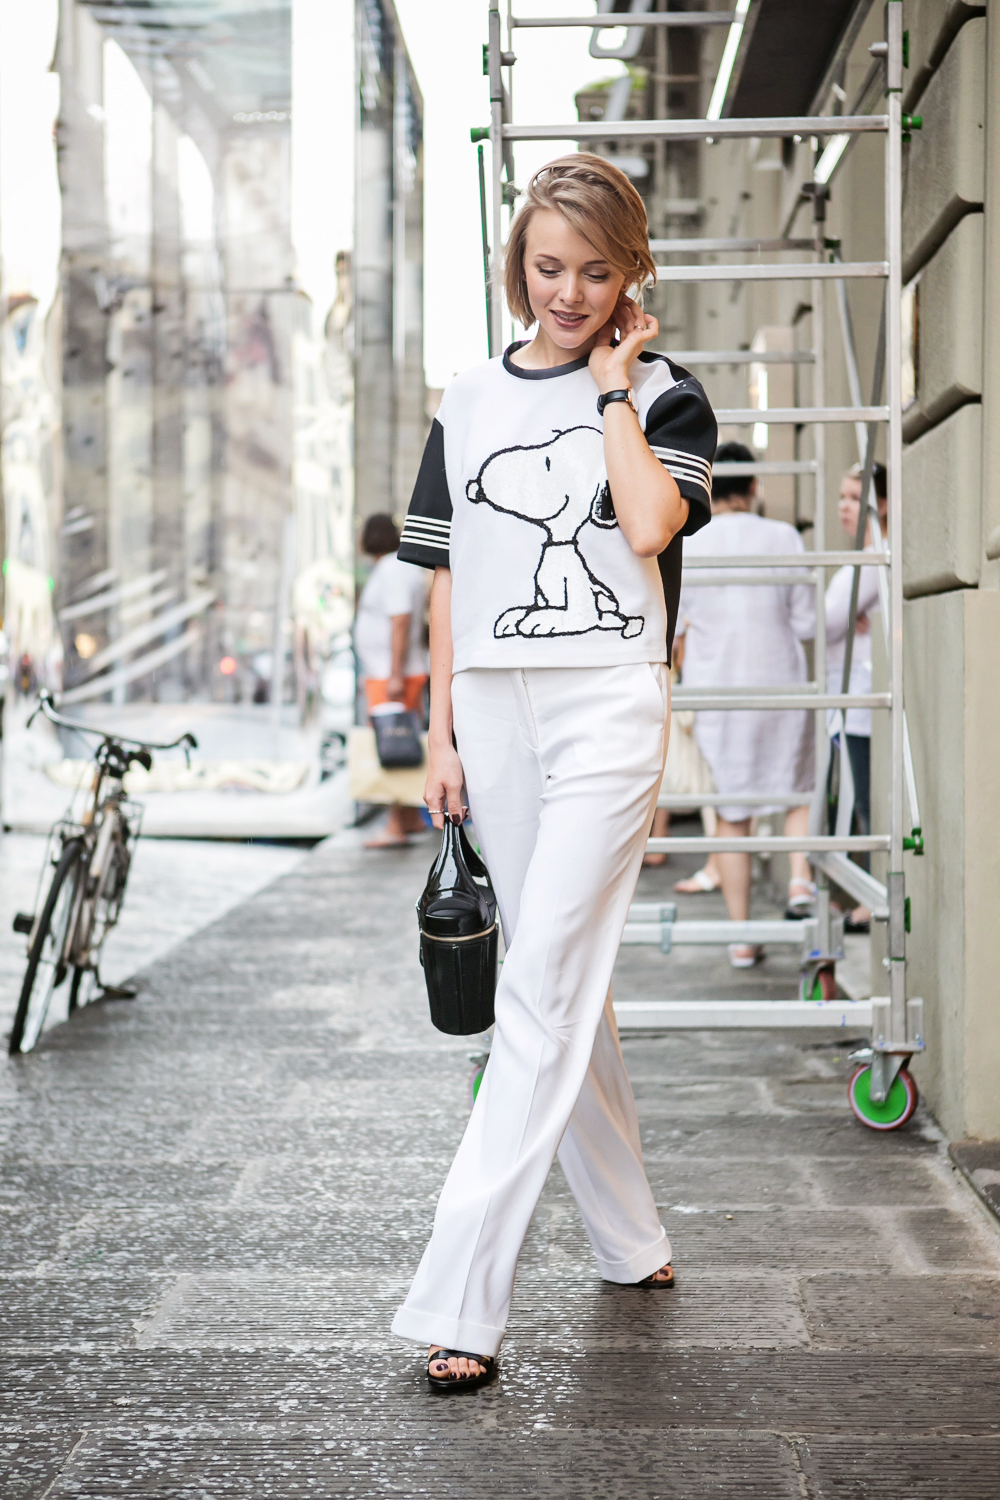 darya kamalova from thecablook in florence with luisaviaroma firenze4ever stylelab wearing fay total look snoopy-19